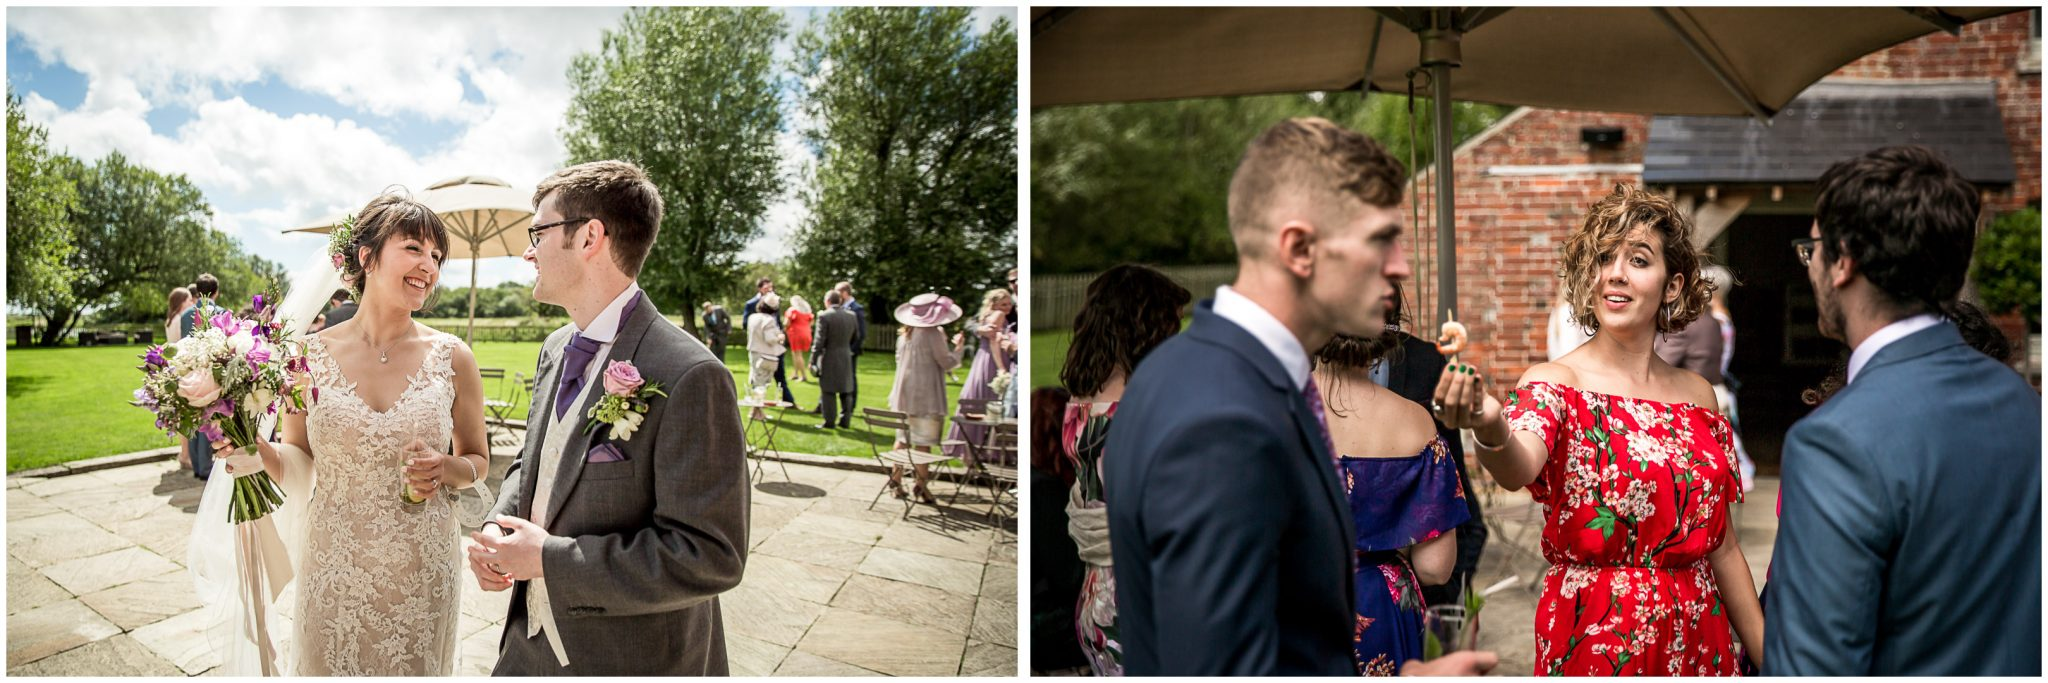 Sopley Mill wedding photography candid photos during drinks reception